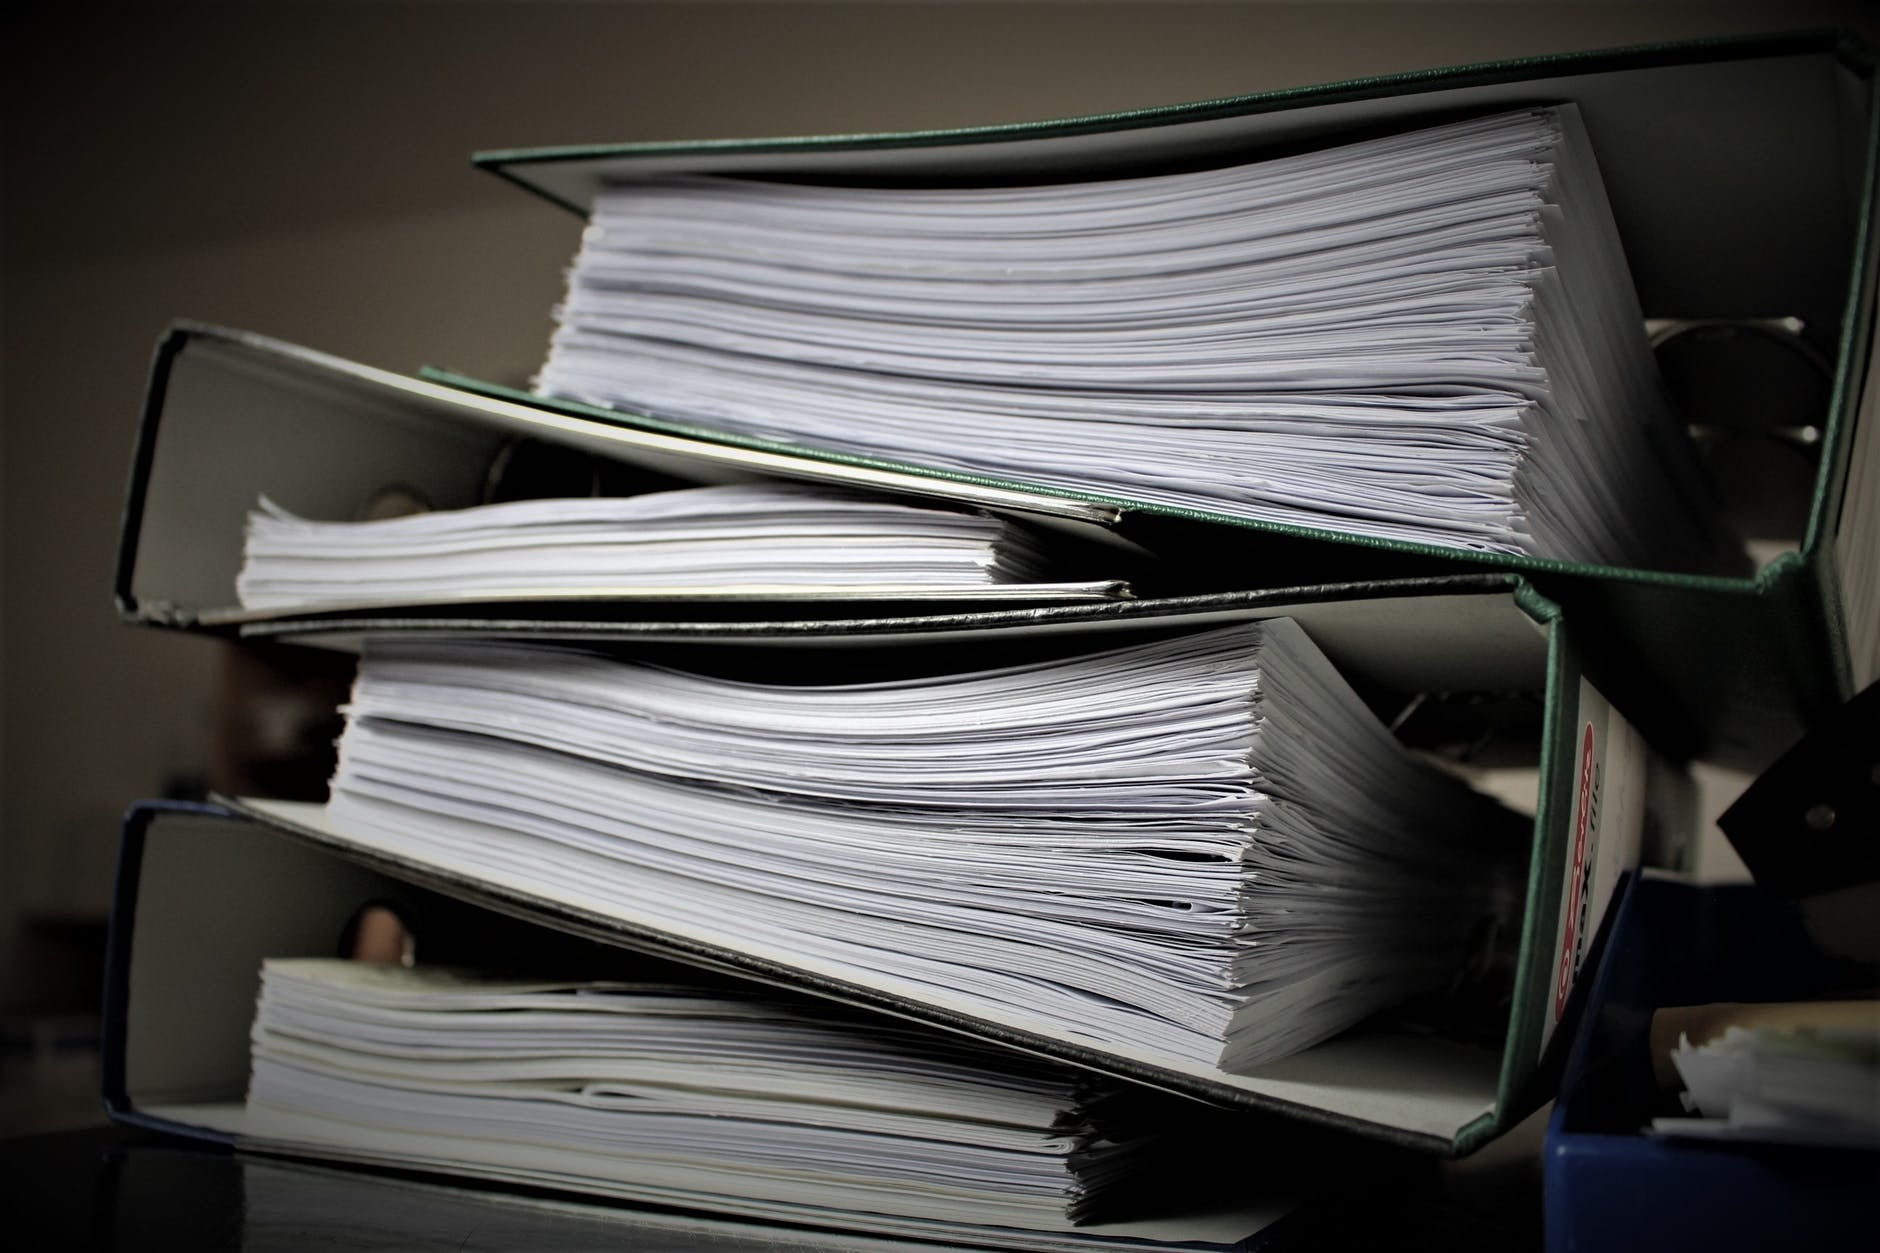 Four binders filled with papers and stacked on a desk